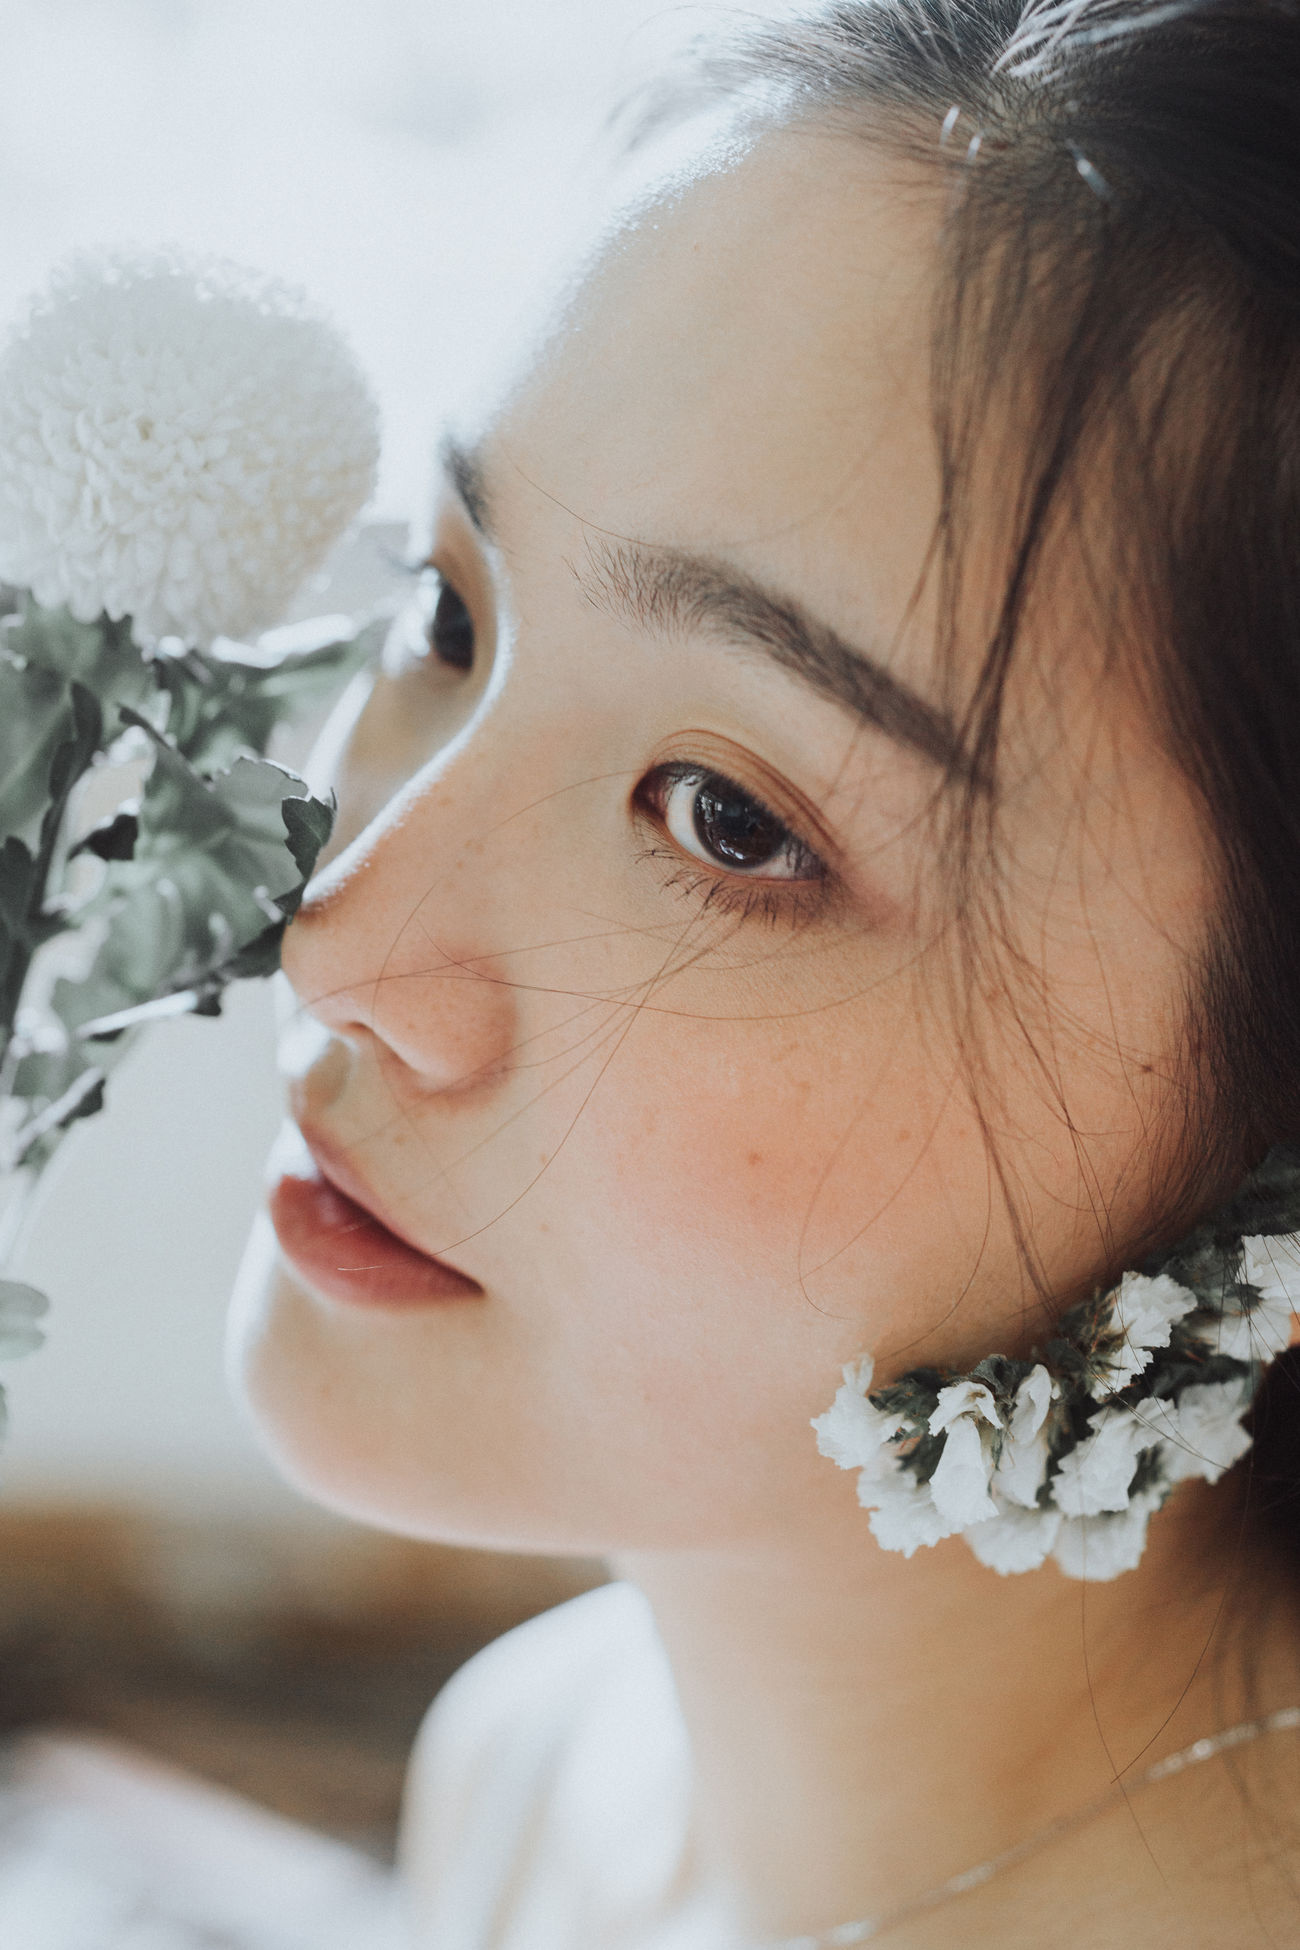 Beautiful Woman Childhood Close-up Day Elementary Age Flower Fragility Freshness Human Face Indoors  Nature One Person People Portrait Real People The Portraitist - 2017 EyeEm Awards Young Adult Young Women